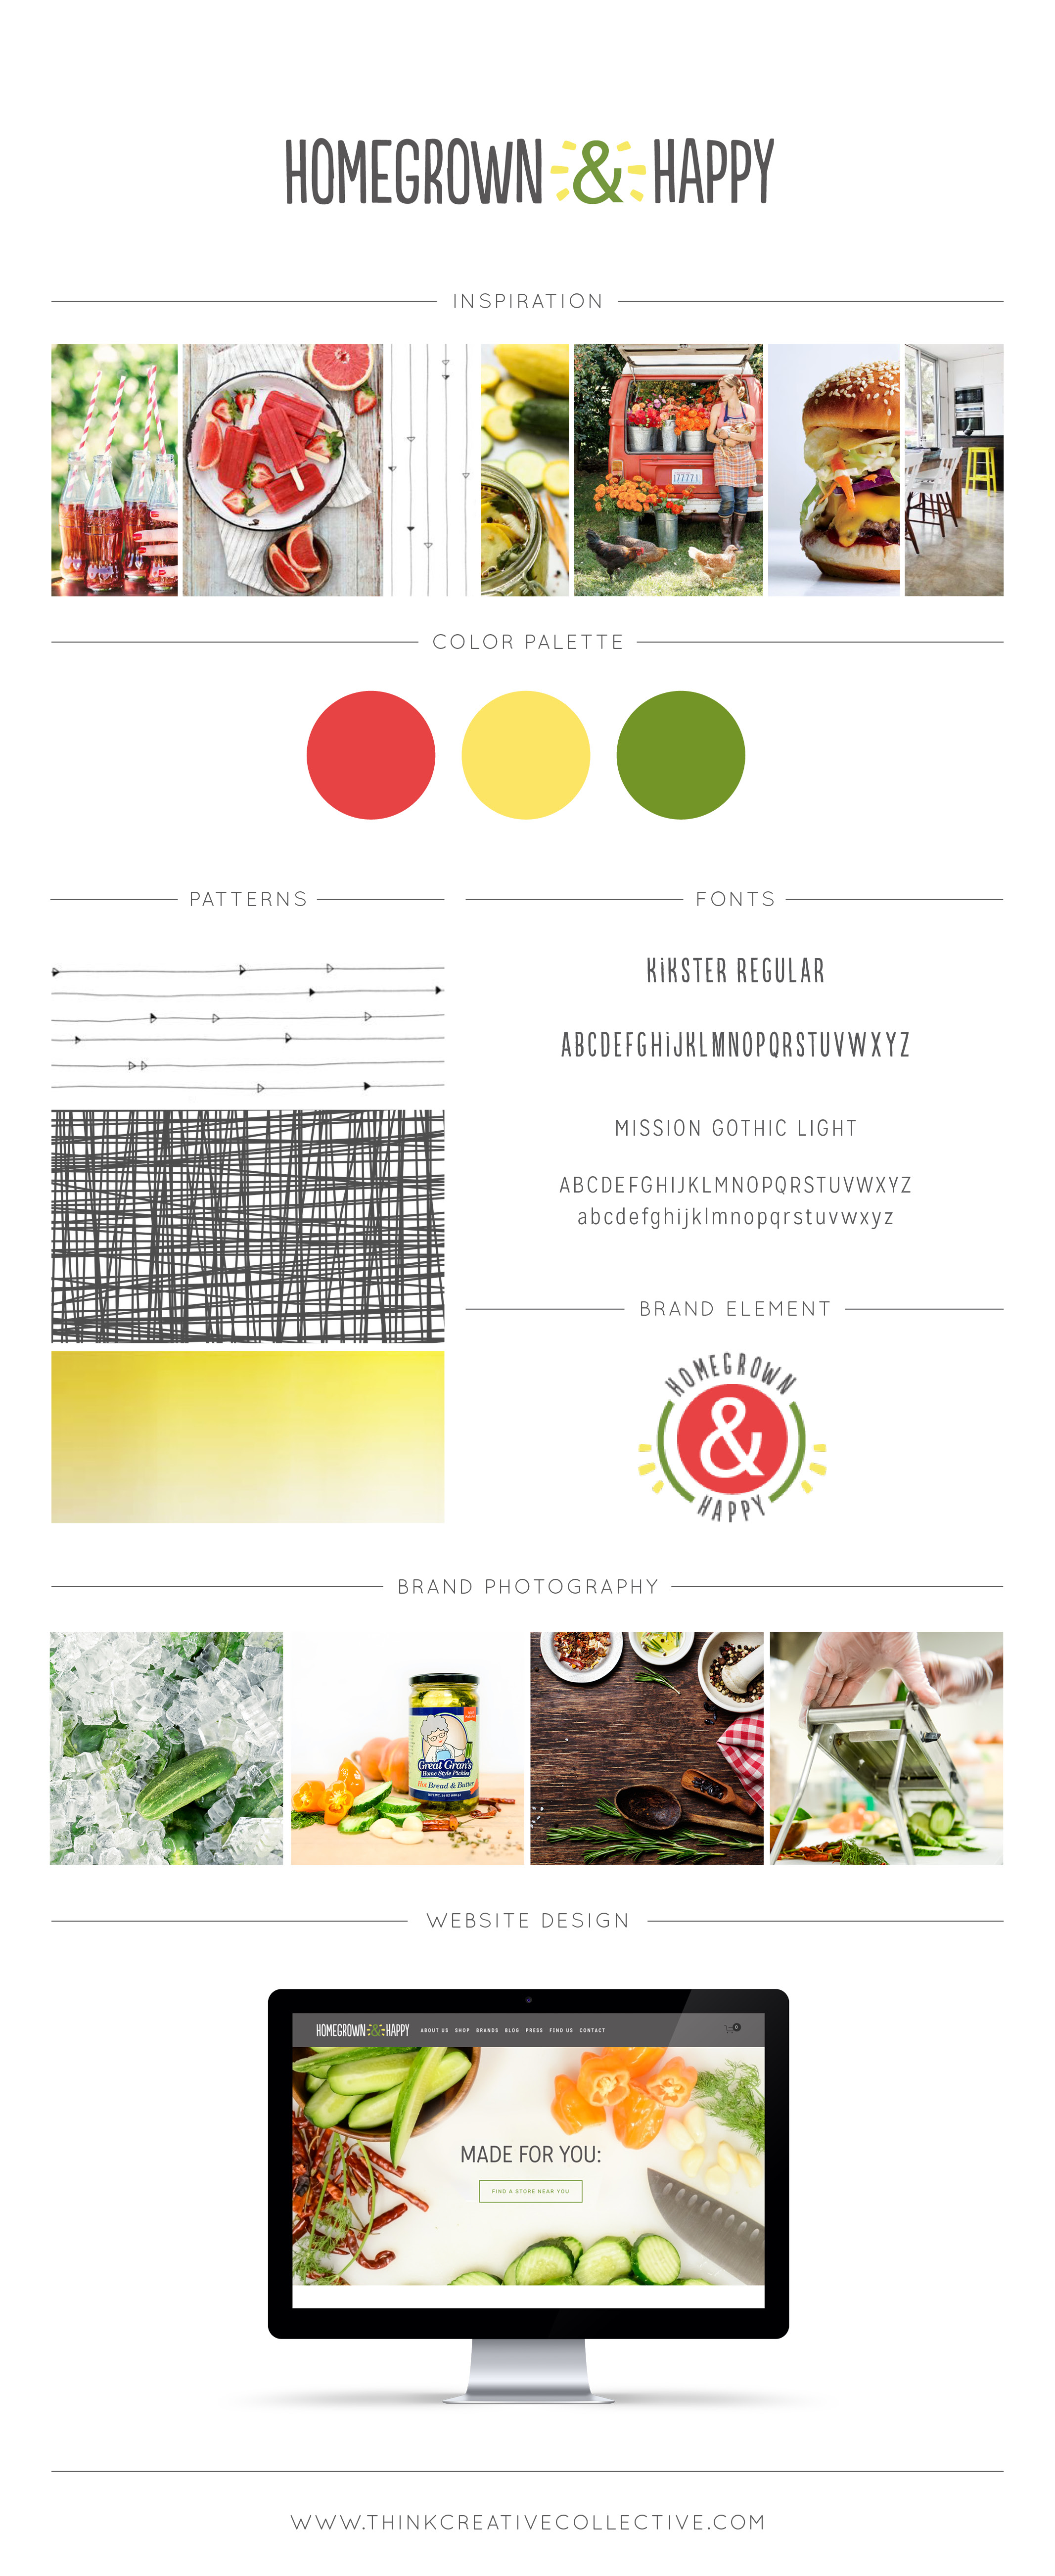 Homegrown & Happy  |  Brand & Style Board  |  Think Creative Collective